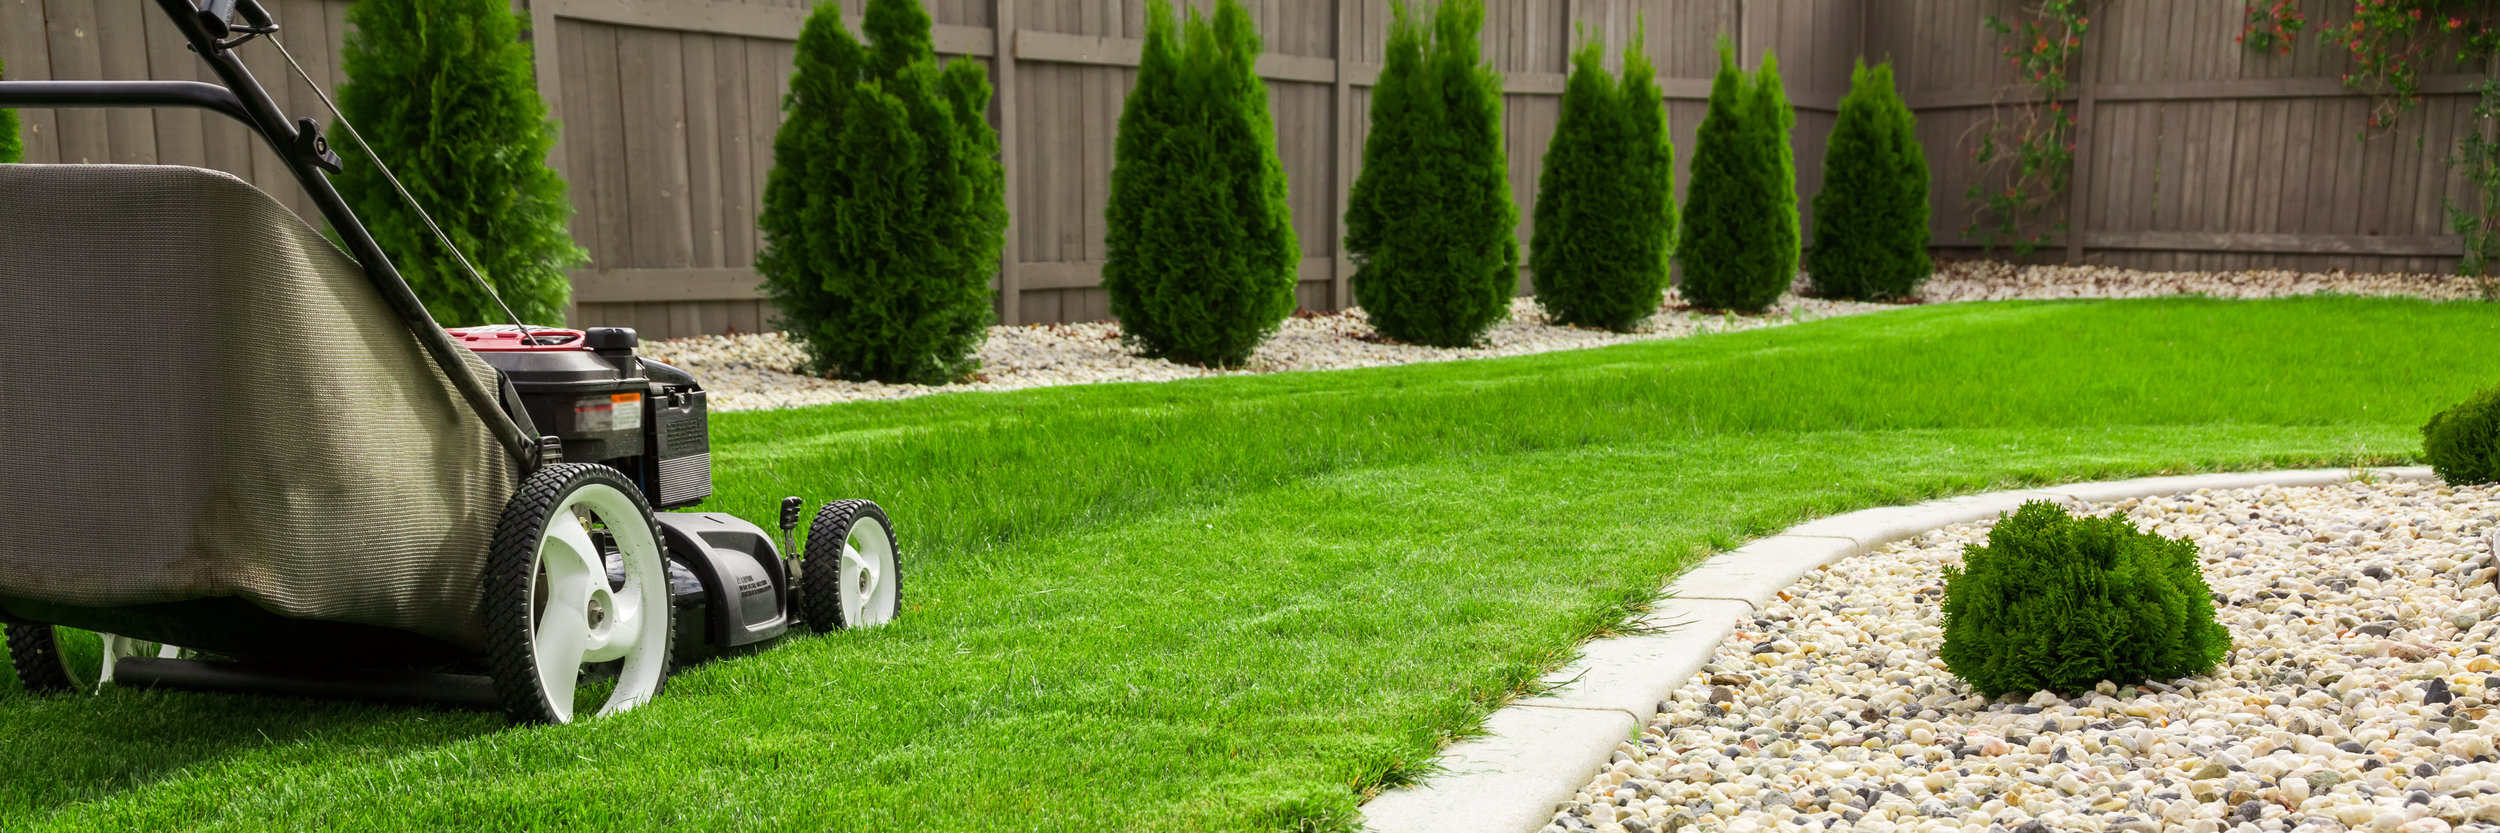 Important Features to Include in Your Highland Park, IL, Lawn Care Service